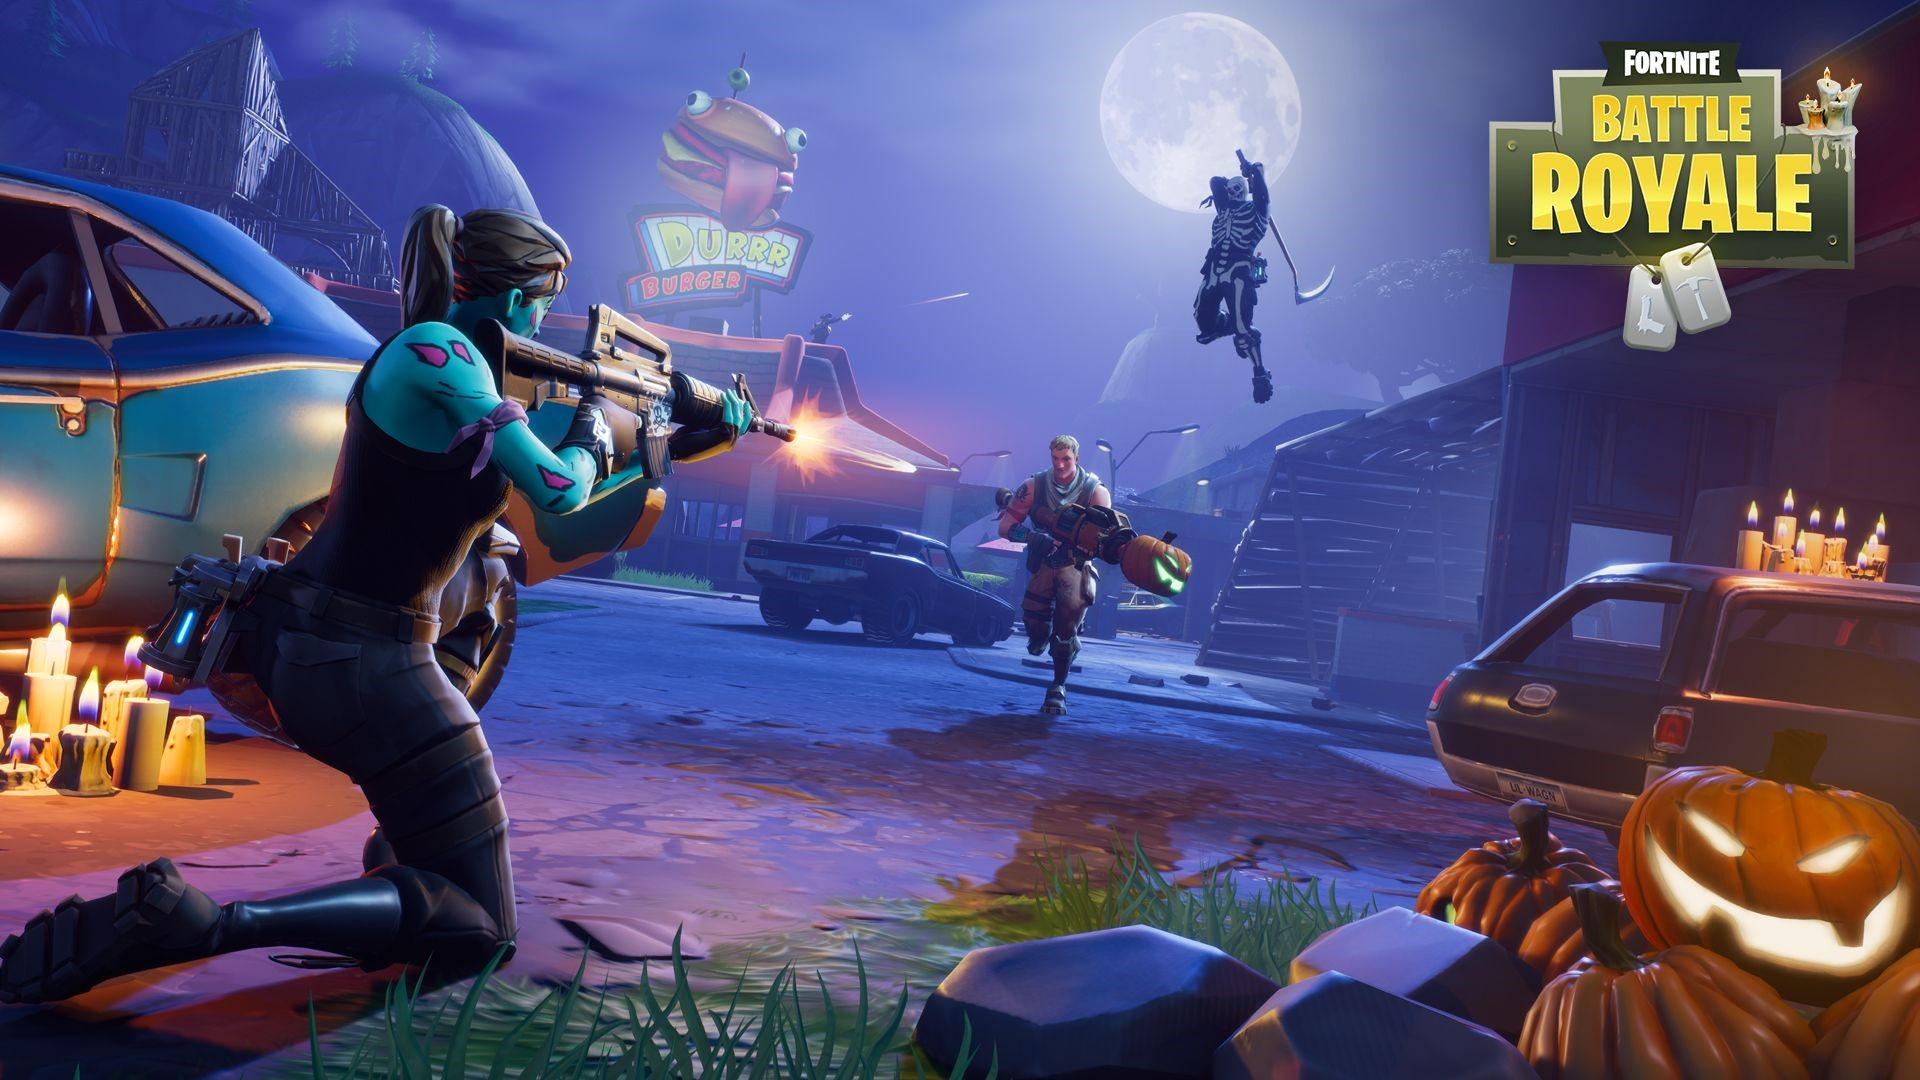 Fortnite Battle Royale UHD Wallpapers